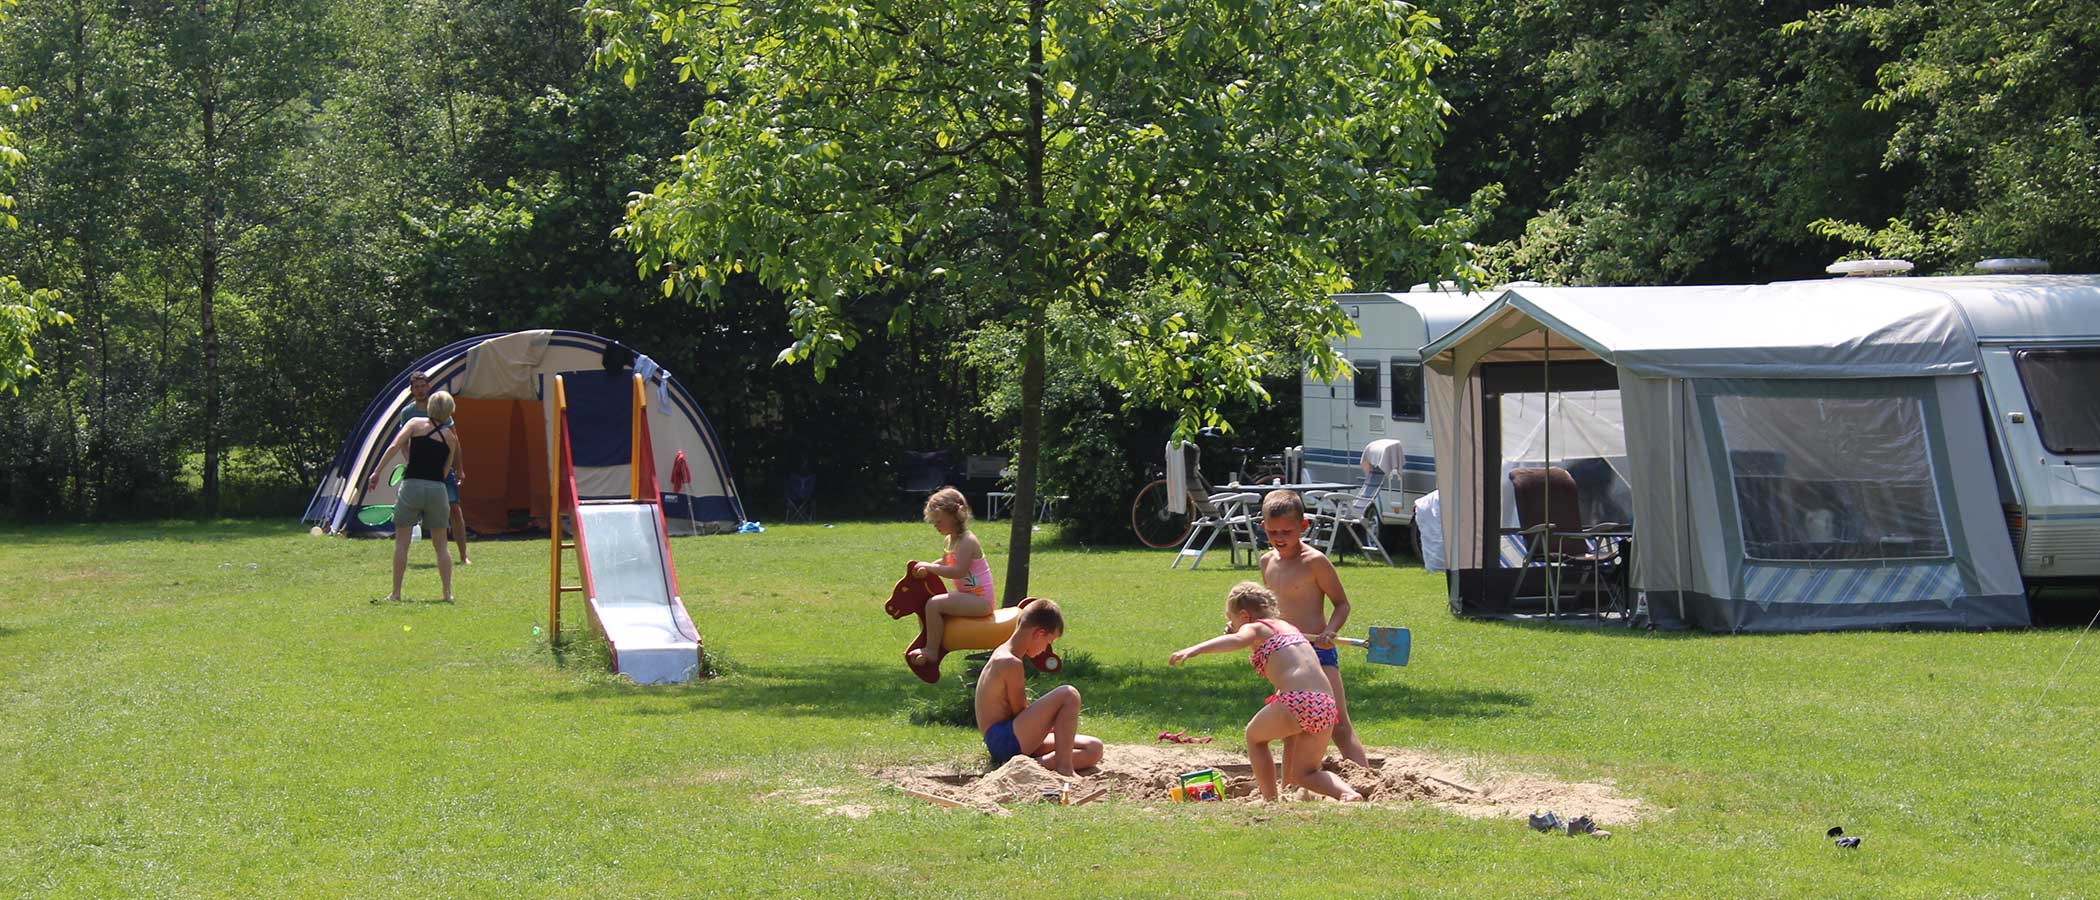 Charme Camping Nederland Met Zwembad Anwb Charme Camping